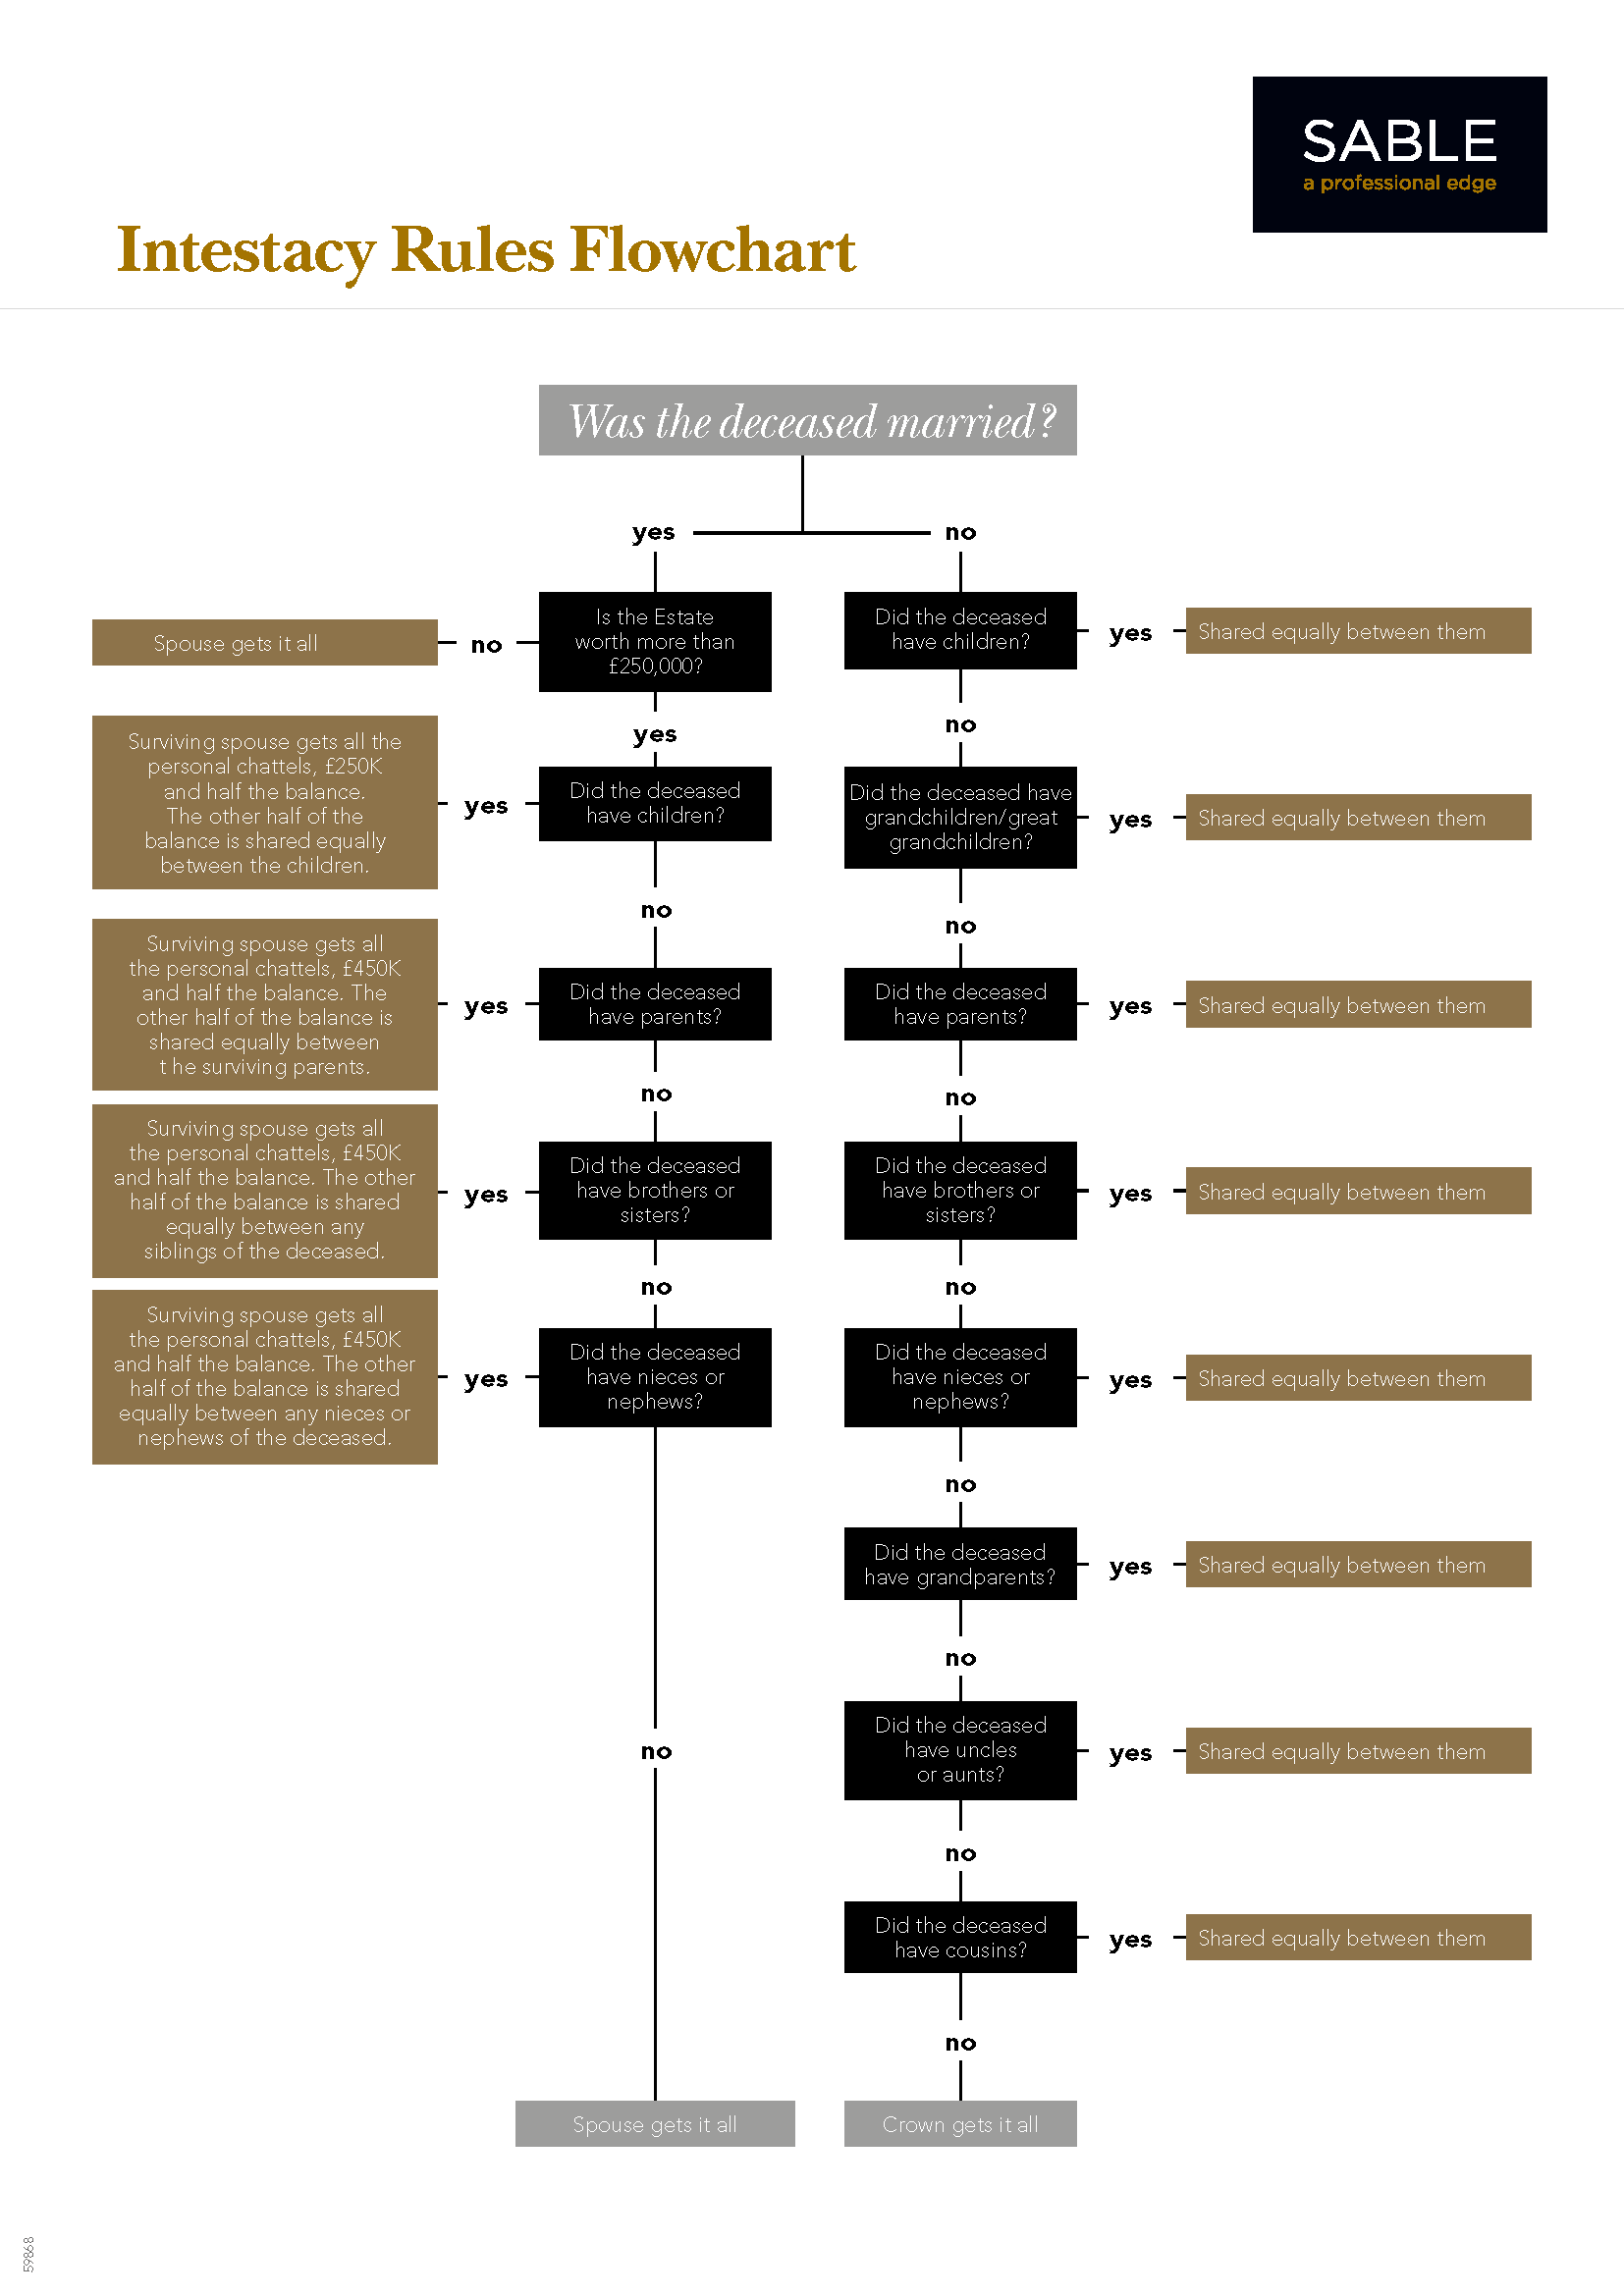 sable-wills_intestacy-rules-flowchart